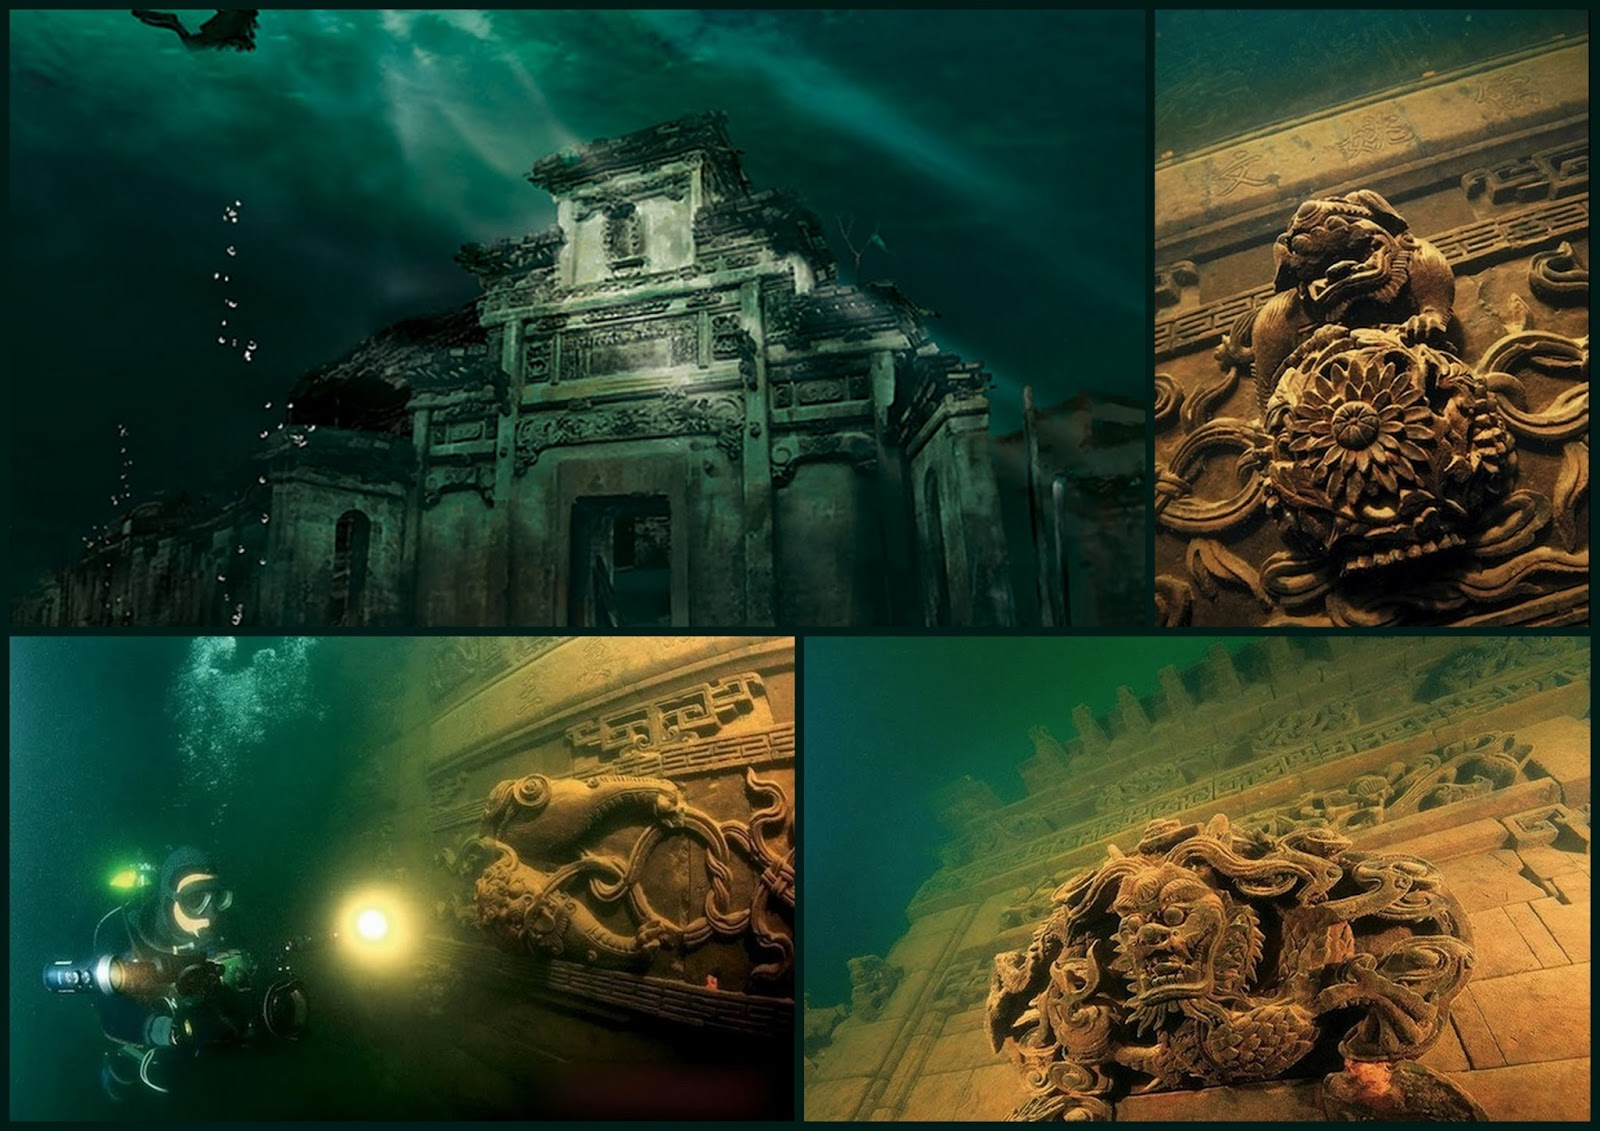 shicheng underwater city - Images for shicheng underwater city